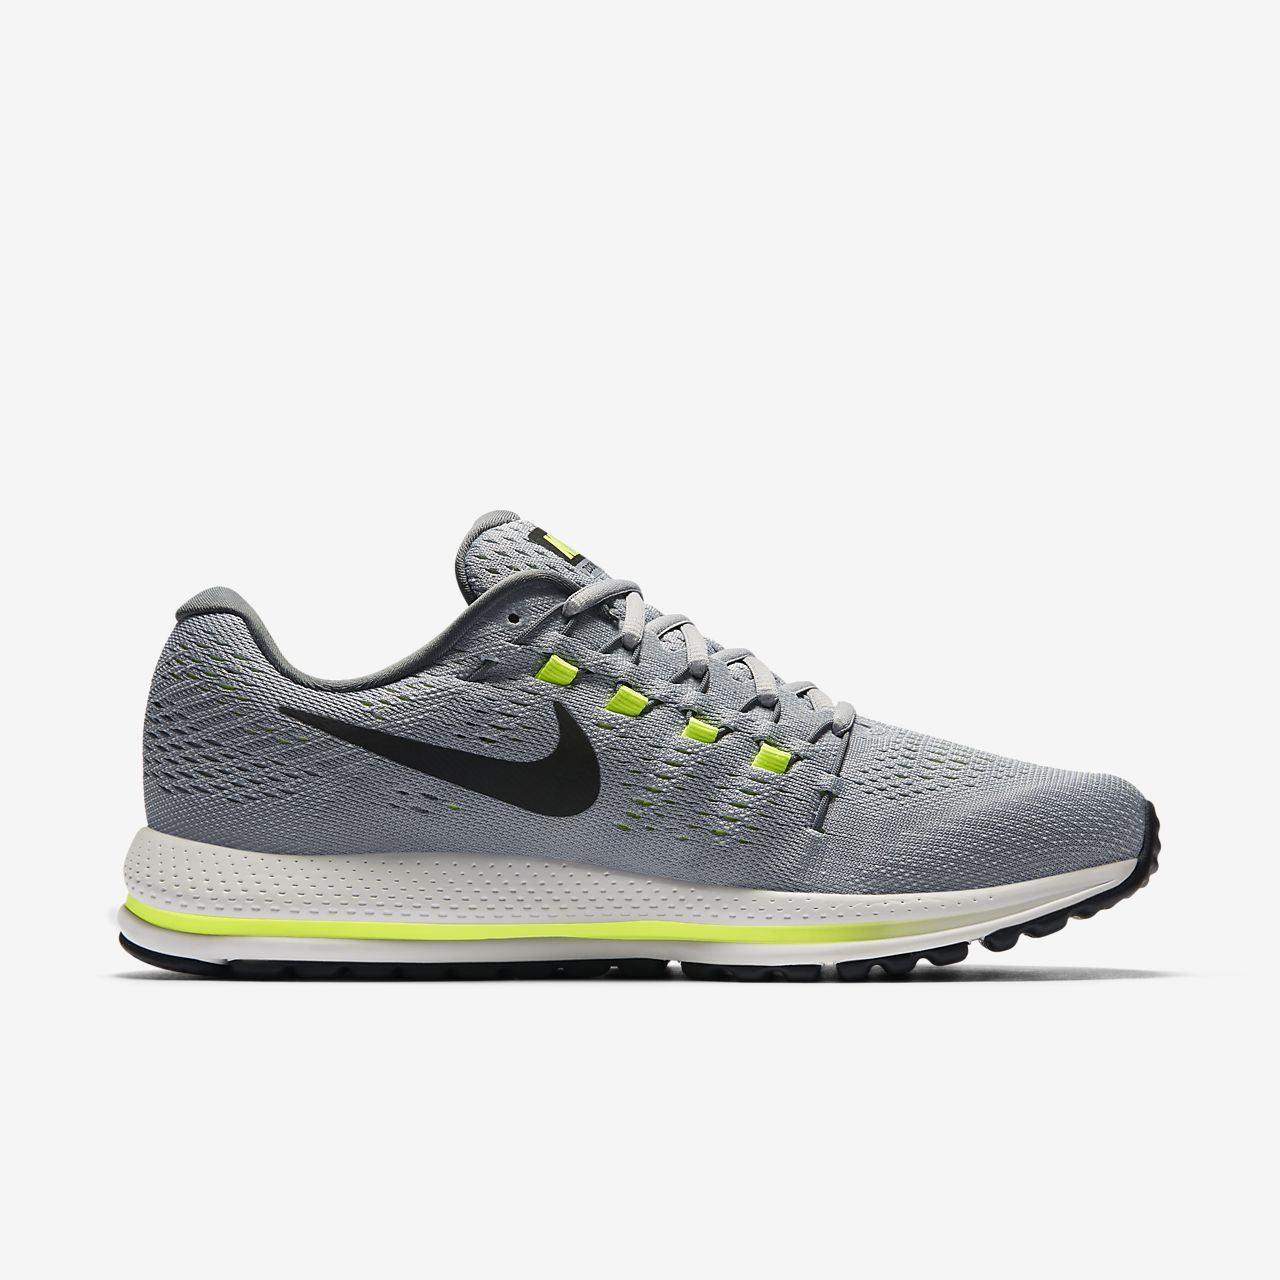 ... Nike Air Zoom Vomero 12 (Narrow) Men's Running Shoe